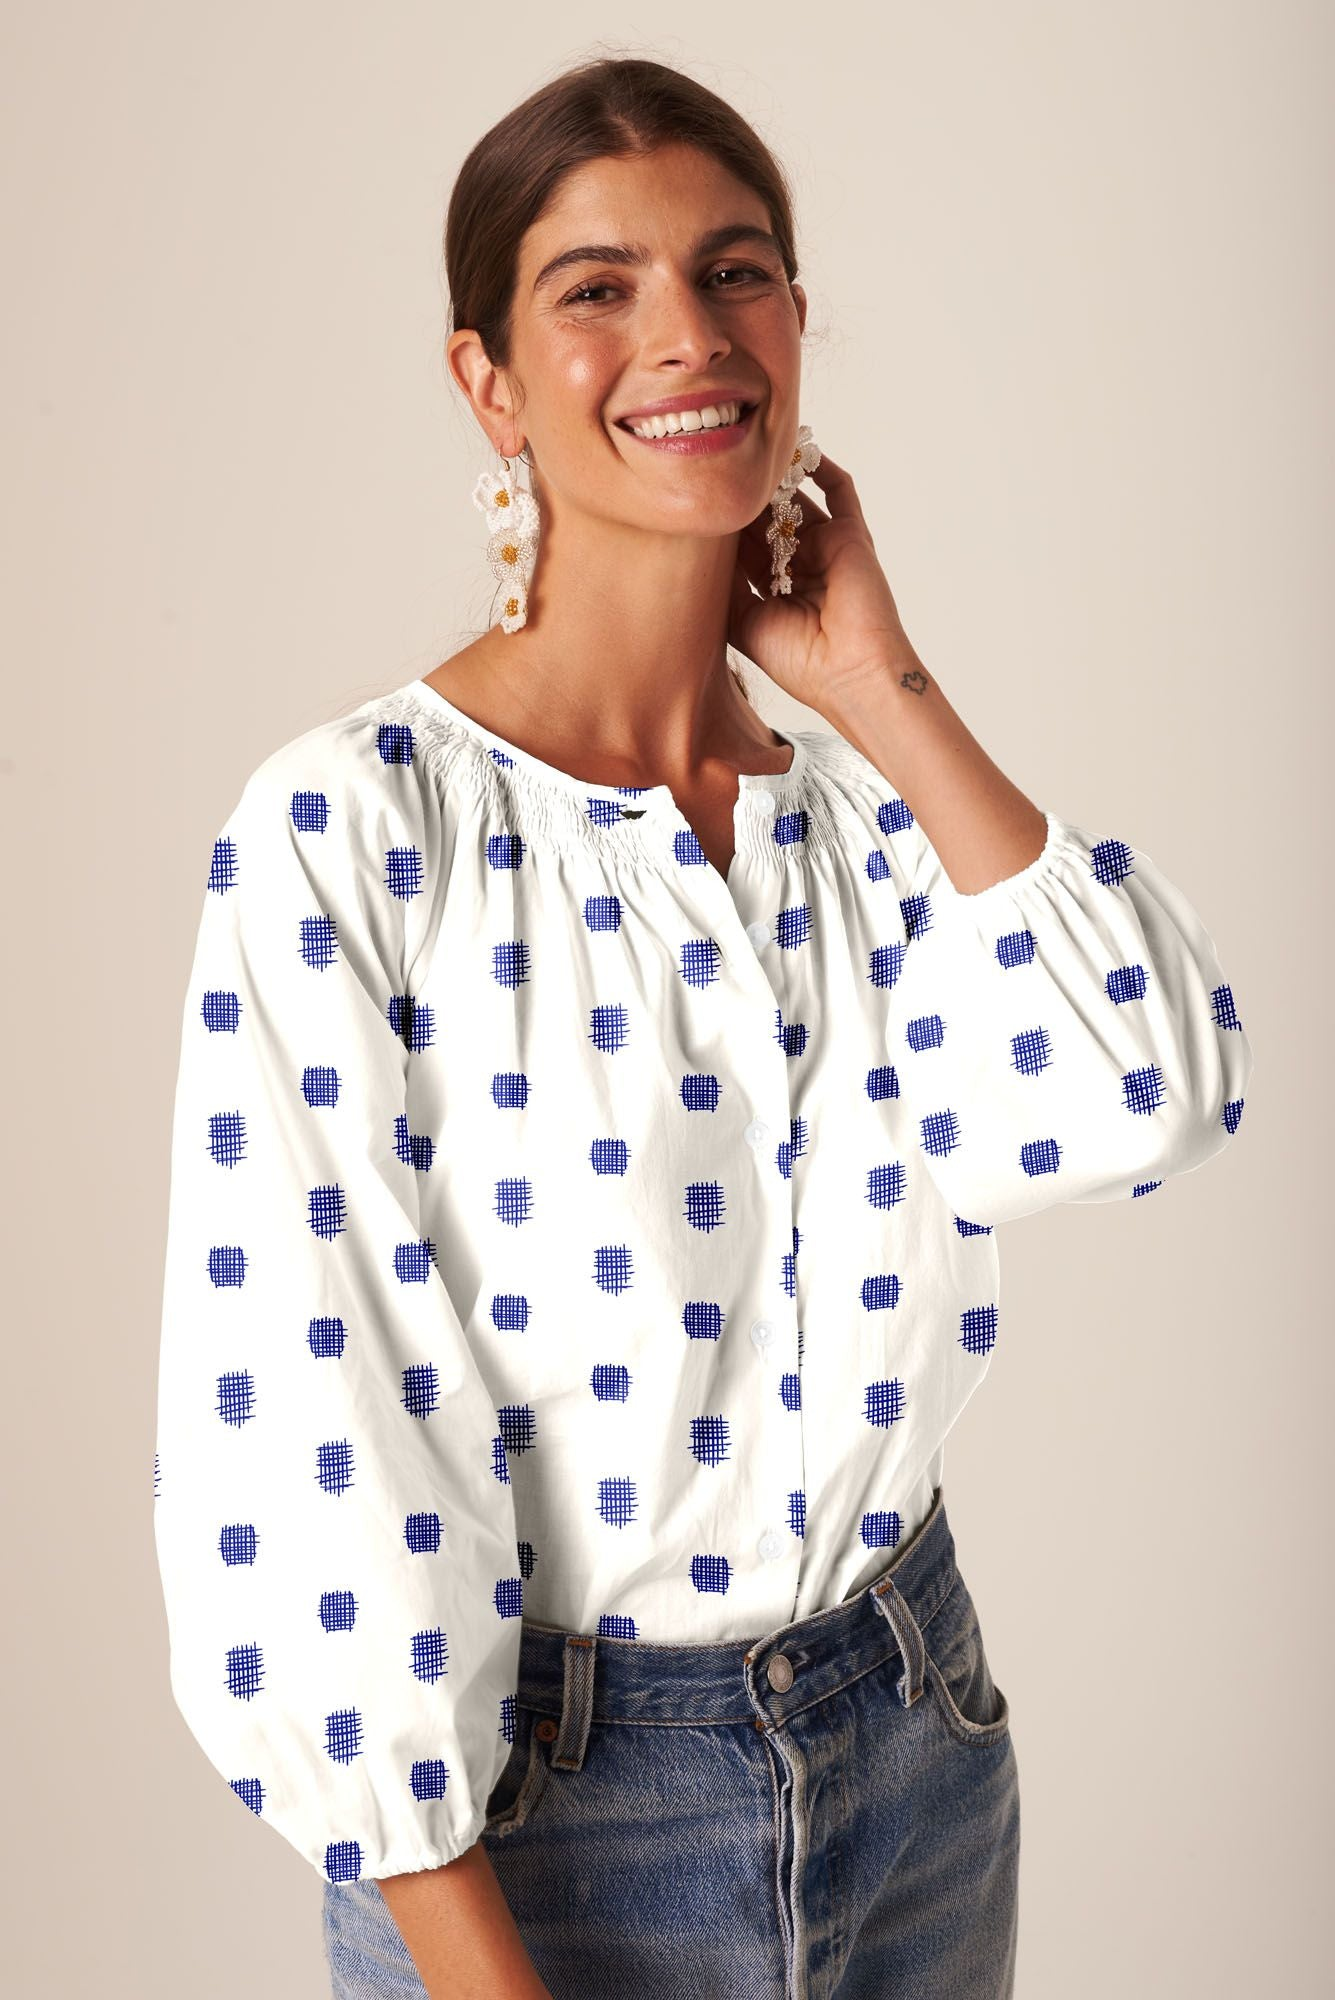 The Classic Blouse | Cross Stitch